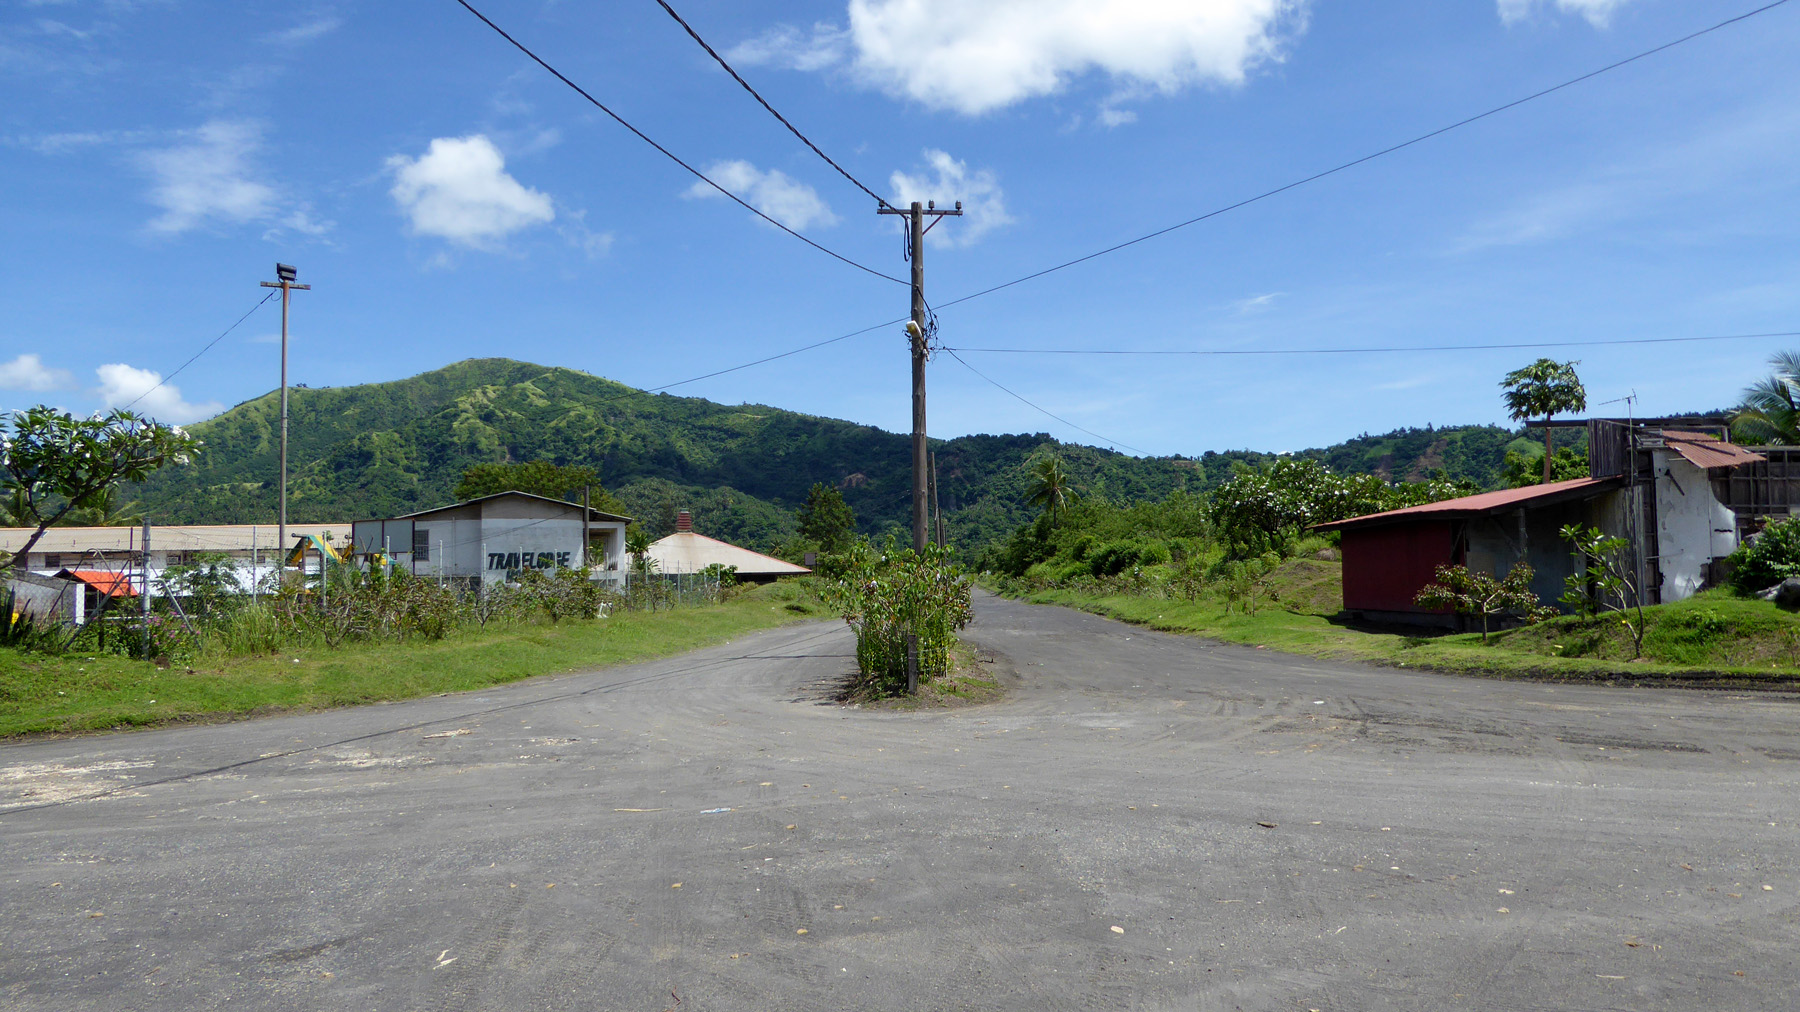 Dusty Street of Old Rabaul